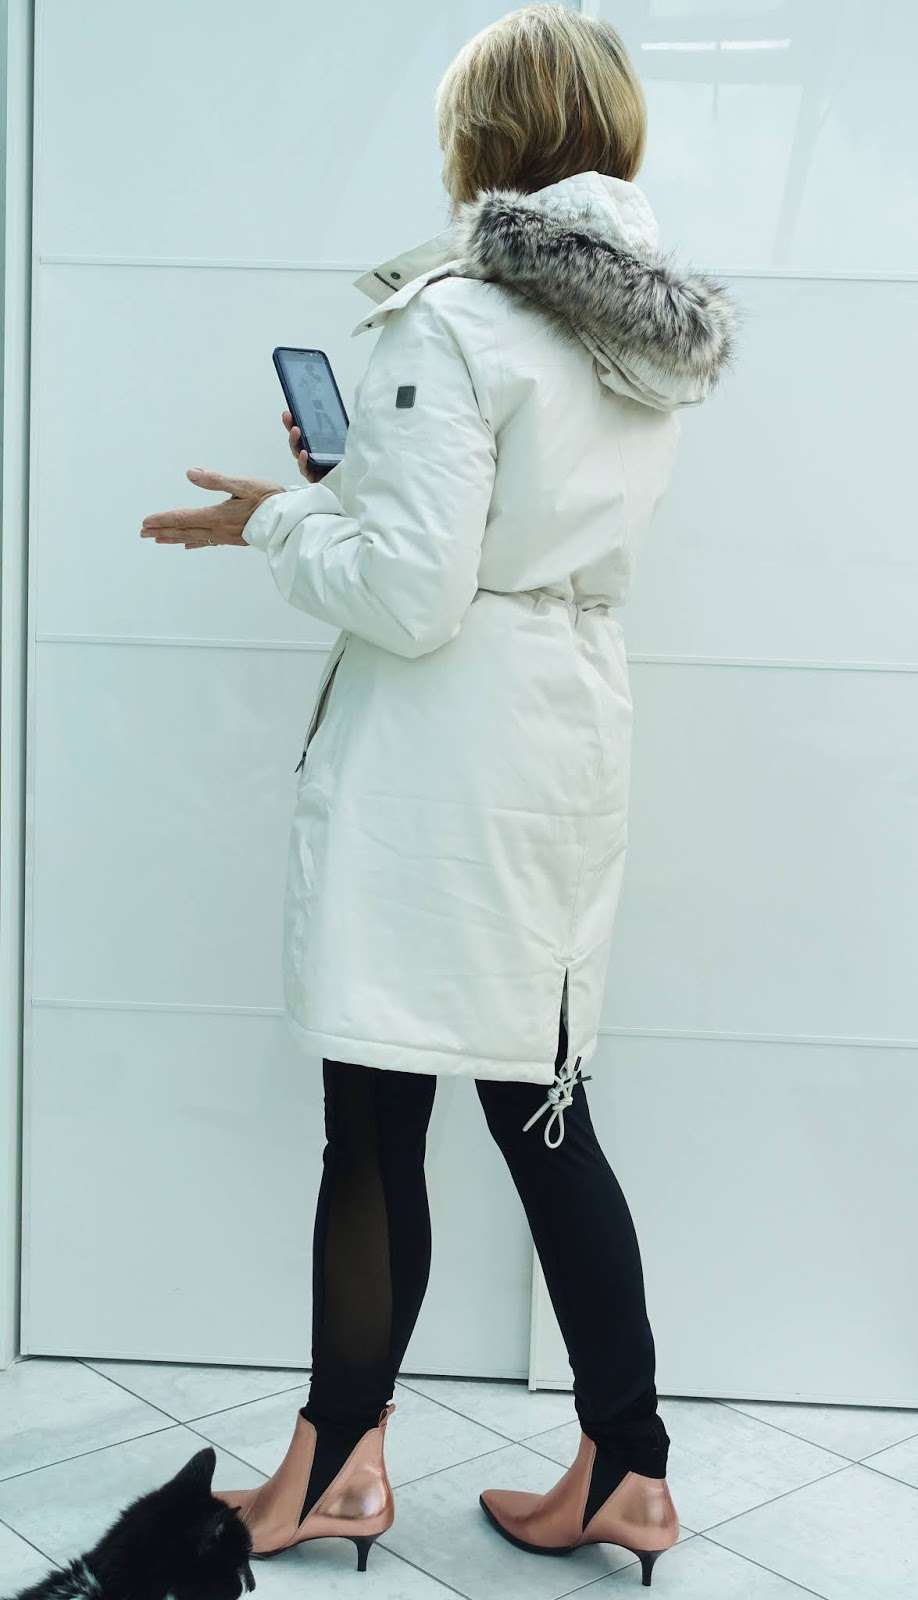 Rear view of the Zaneck parka from the North Face worn by over 50s style blogger Is This Mutton with black leggings and rose gold ankle boots